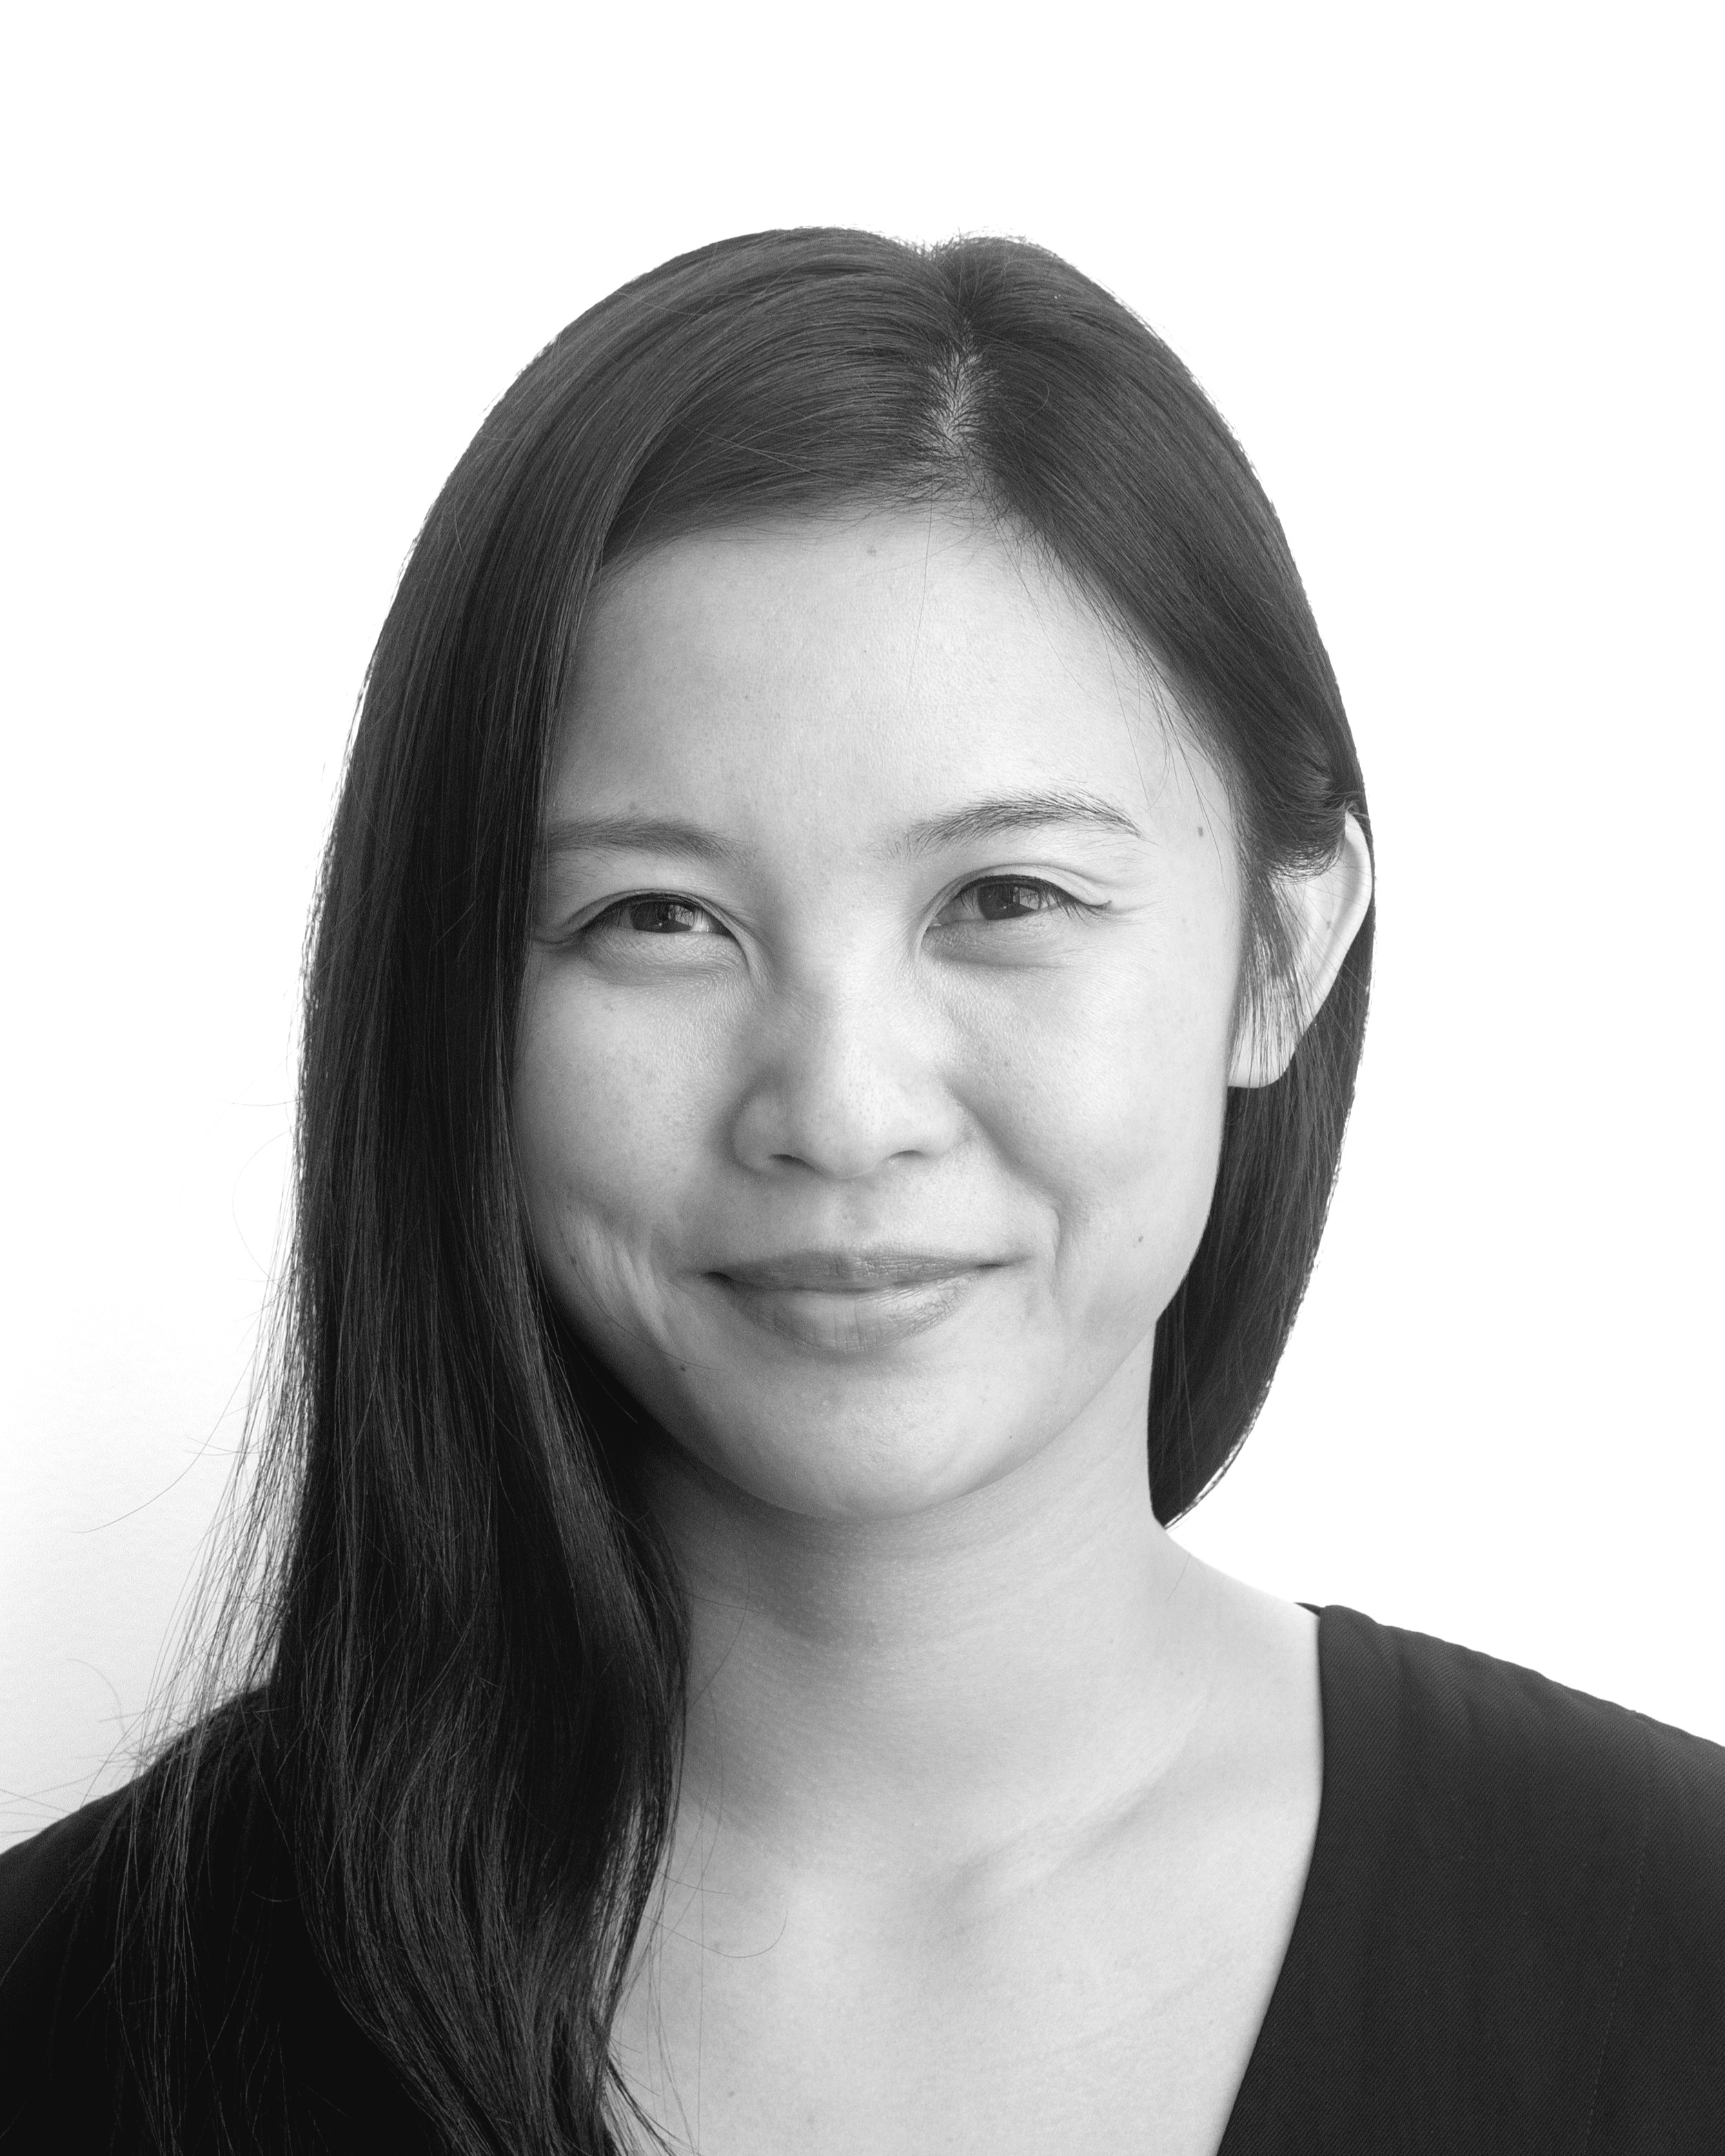 Jenny Shen - Jenny is a founding partner at Primary. Previously, Jenny has worked with Bjarke Ingels Group on commercial towers and condominium projects in the US and abroad. Her work has been featured in publications including the New York Times, Fast Company, and Wallpaper*. Jenny received her Master of Architecture at Harvard University.